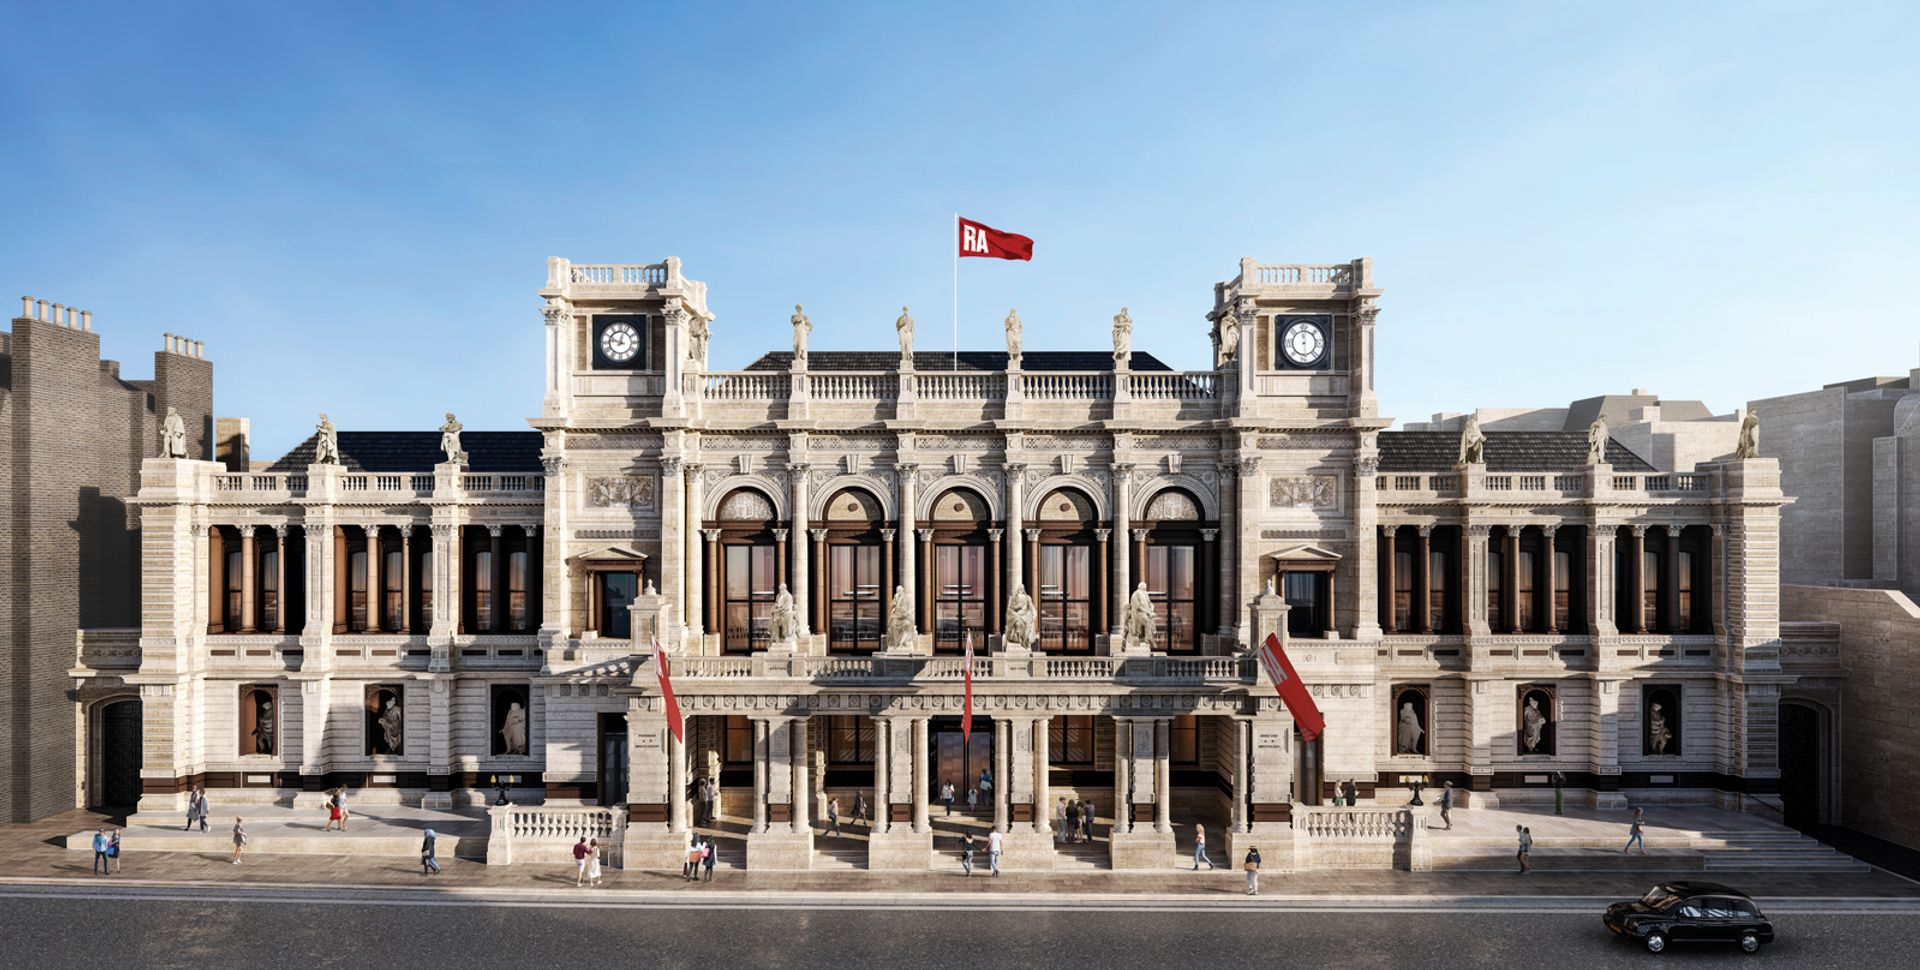 How the façade of the Royal Academy's Burlington Gardens will look after the revamp Royal Academy of Arts